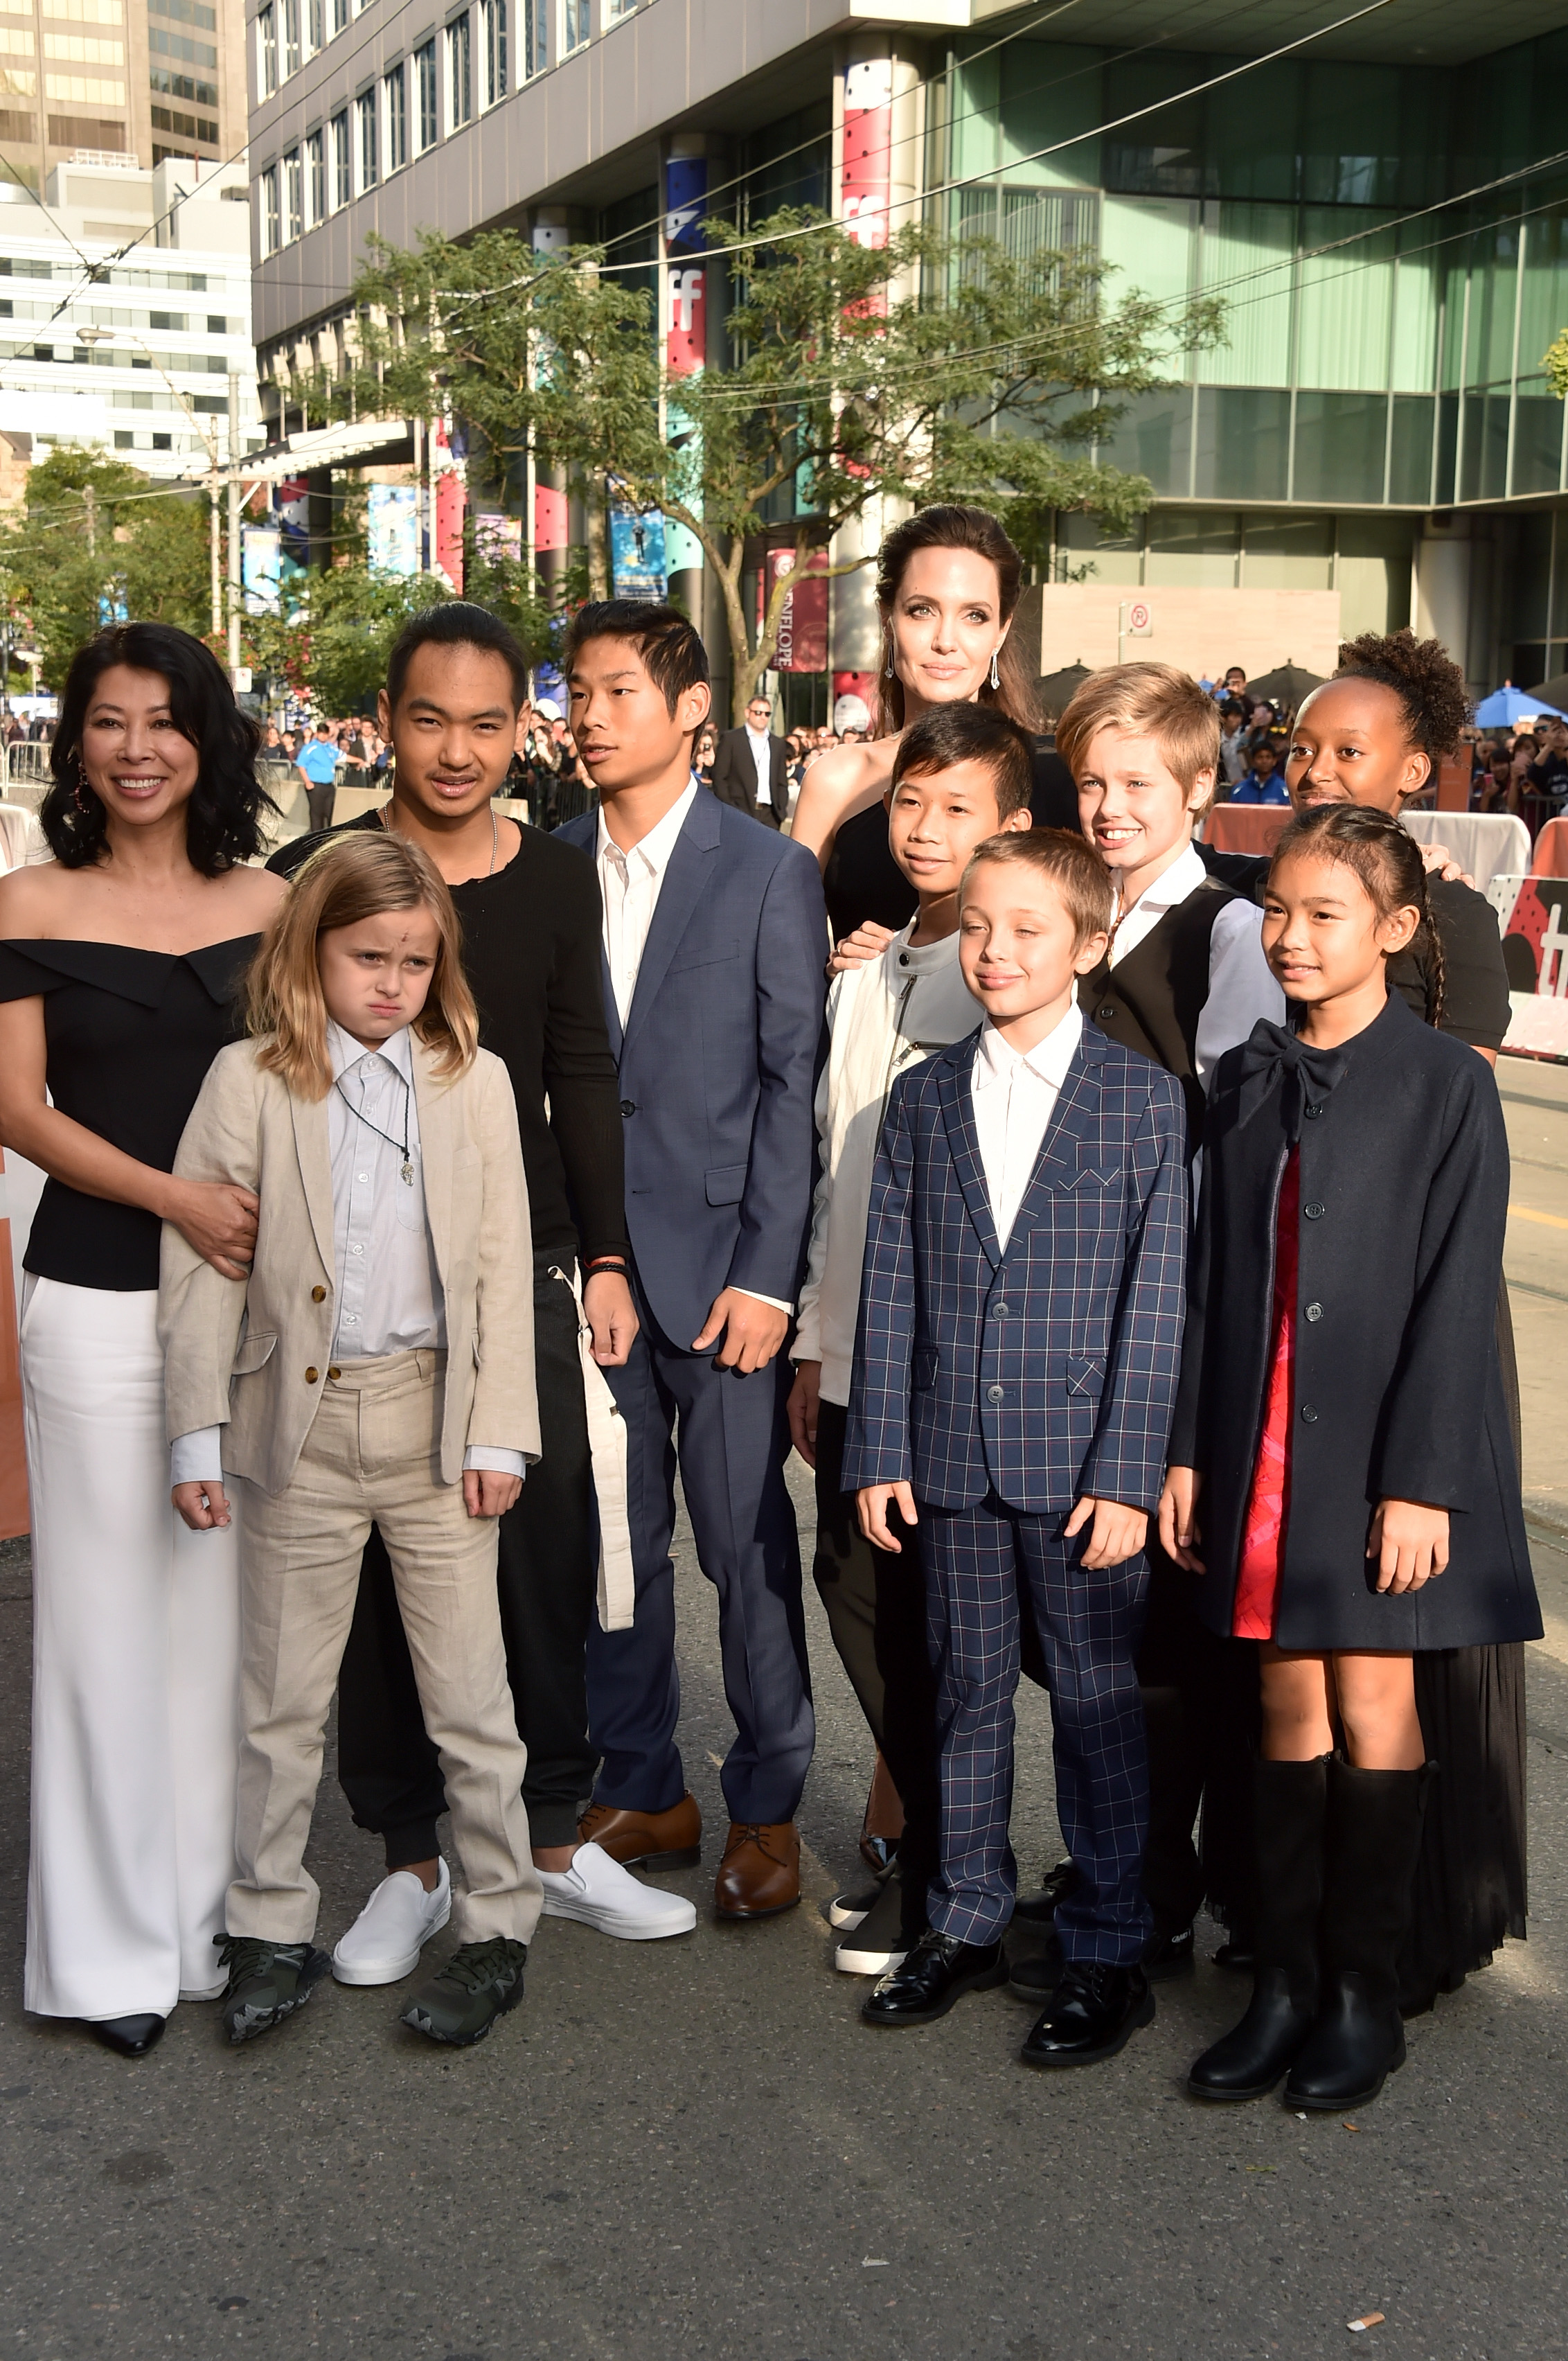 (L-R) Loung Ung, Vivienne Jolie-Pitt, Maddox Jolie-Pitt, Pax Jolie-Pitt, Angelina Jolie, Kimhak Mun, Knox Jolie-Pitt, Shiloh Jolie-Pitt, Zahara Jolie-Pitt and Sareum Srey Moch attend the 'First They Killed My Father' premiere during the 2017 Toronto International Film Festival at Princess of Wales Theatre on September 11, 2017 in Toronto, Canada.